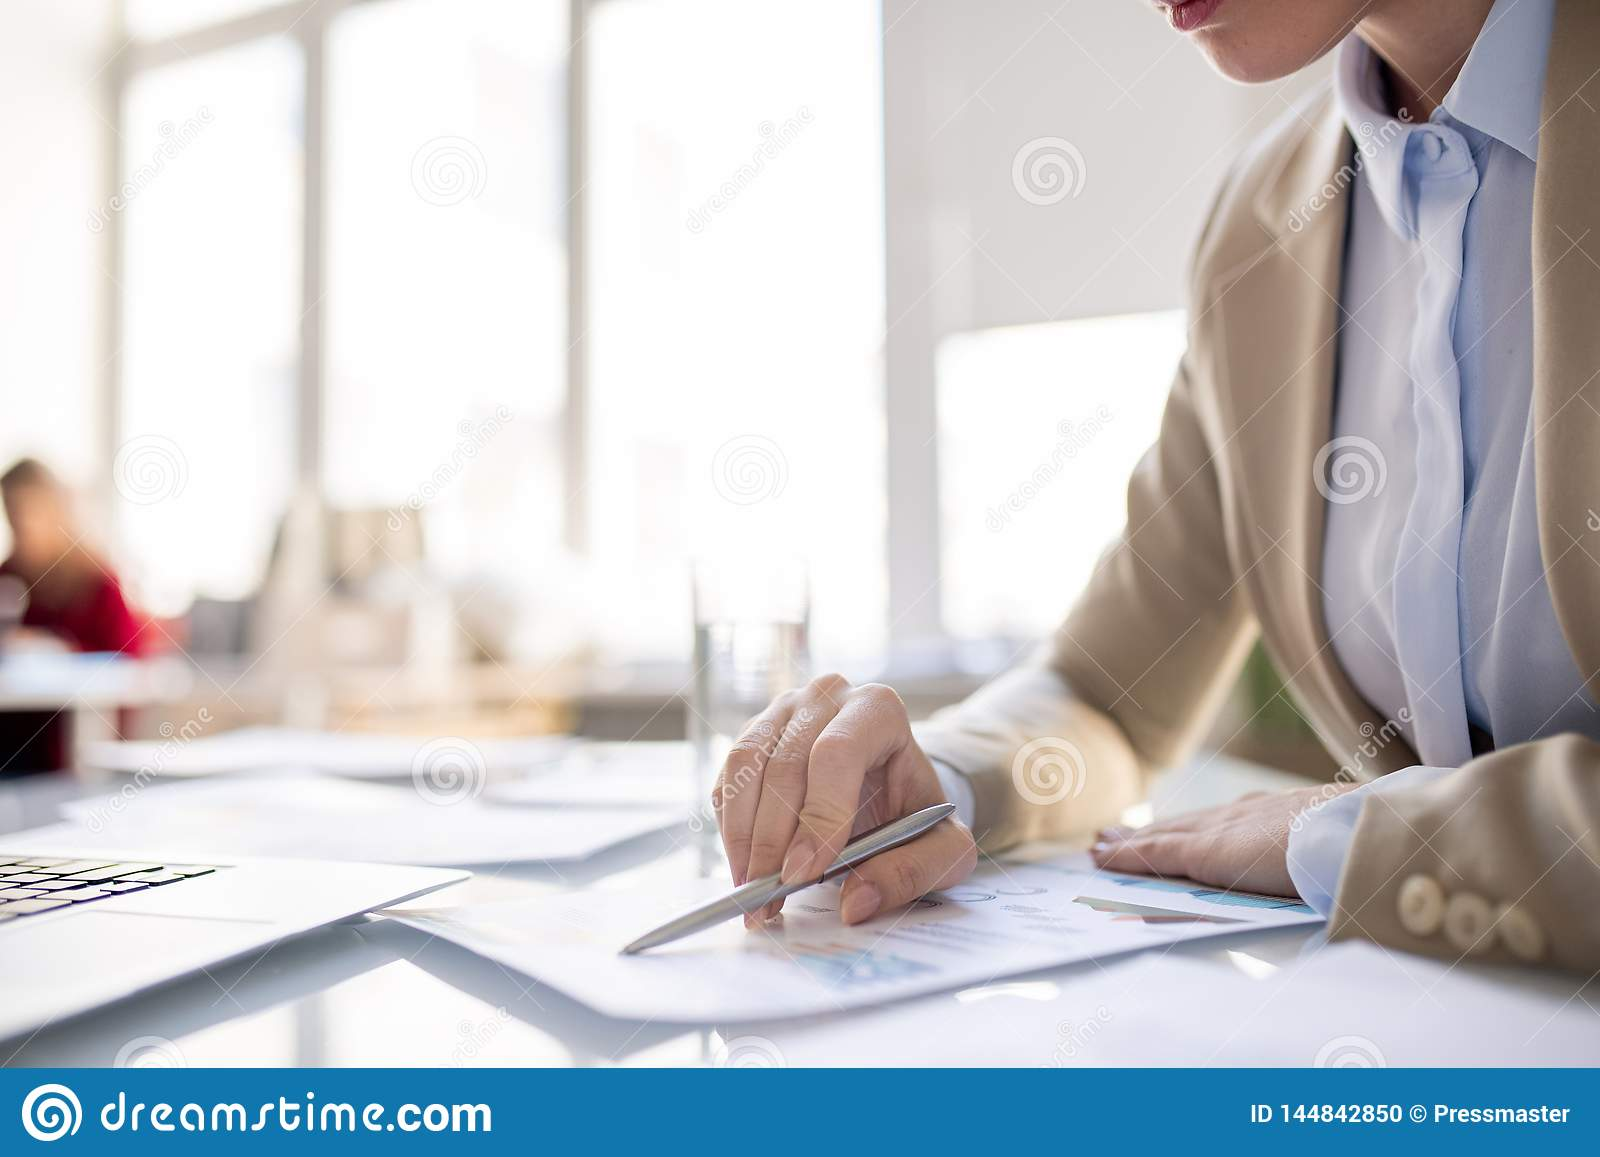 Reading report information in office